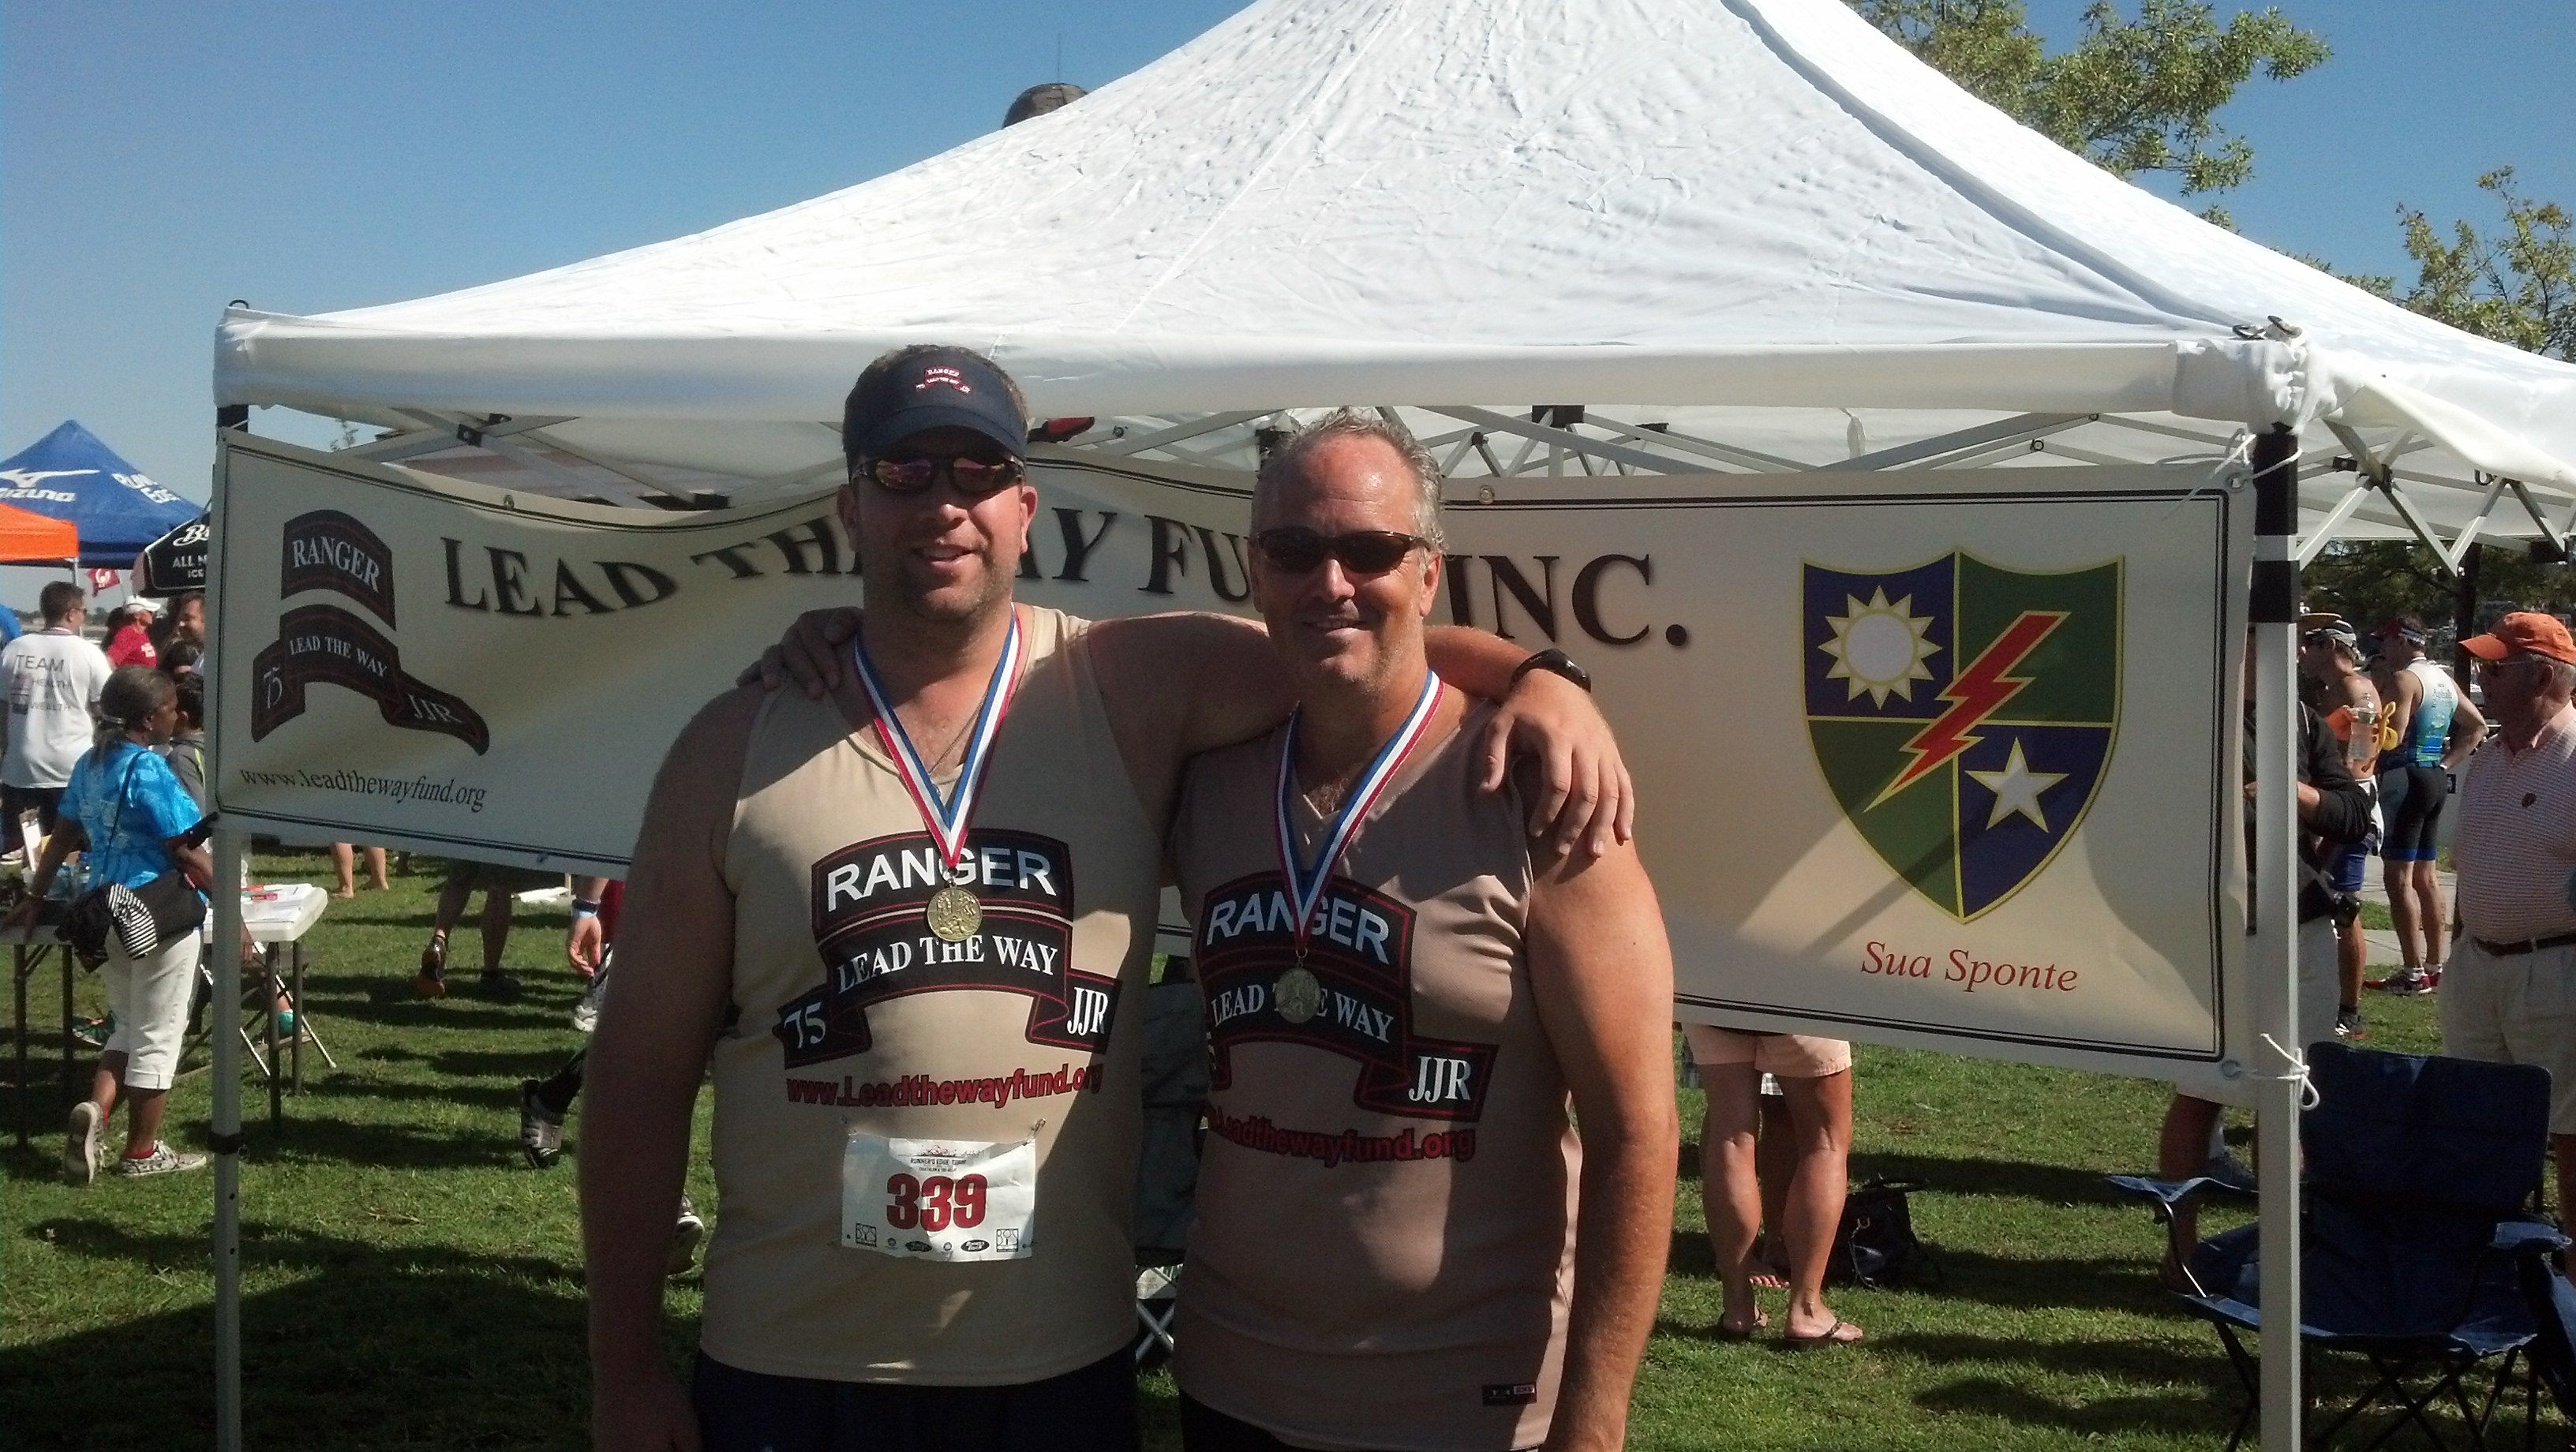 PJ Barry & Tim Dwyer Represent at 2013 Tobay Triathlon